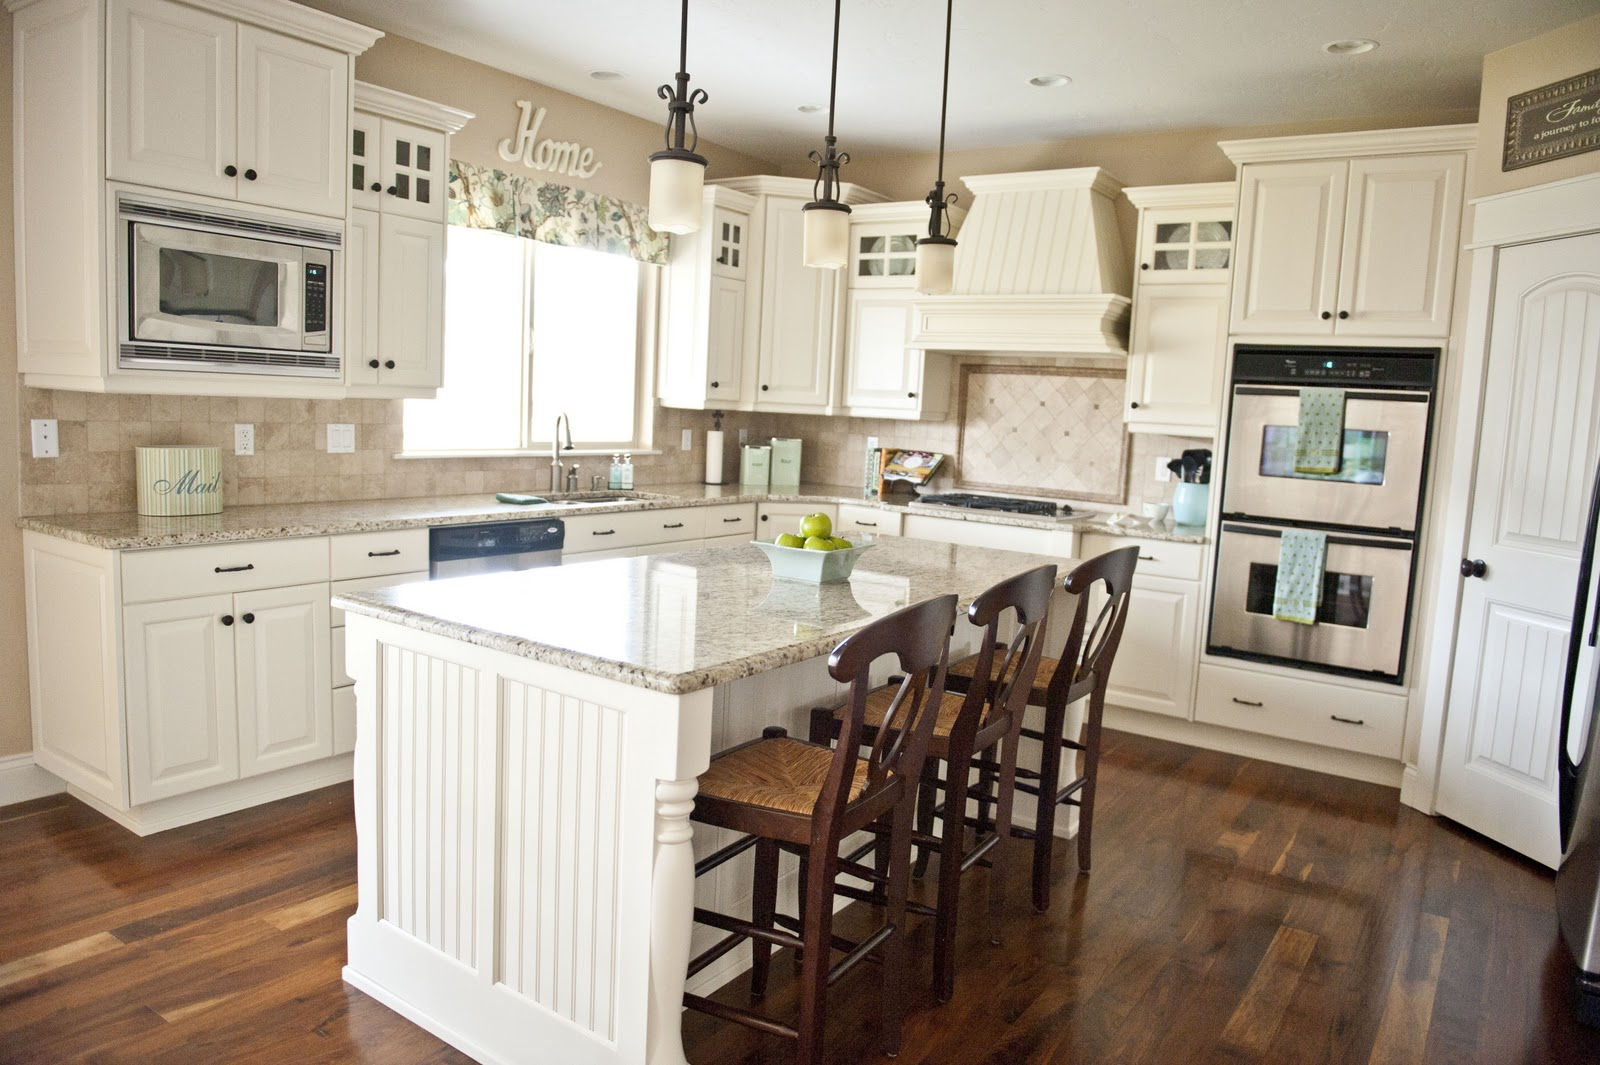 Kitchen Family Room Design Guest Post Sita From The Family Room Design Studio Shannon Claire